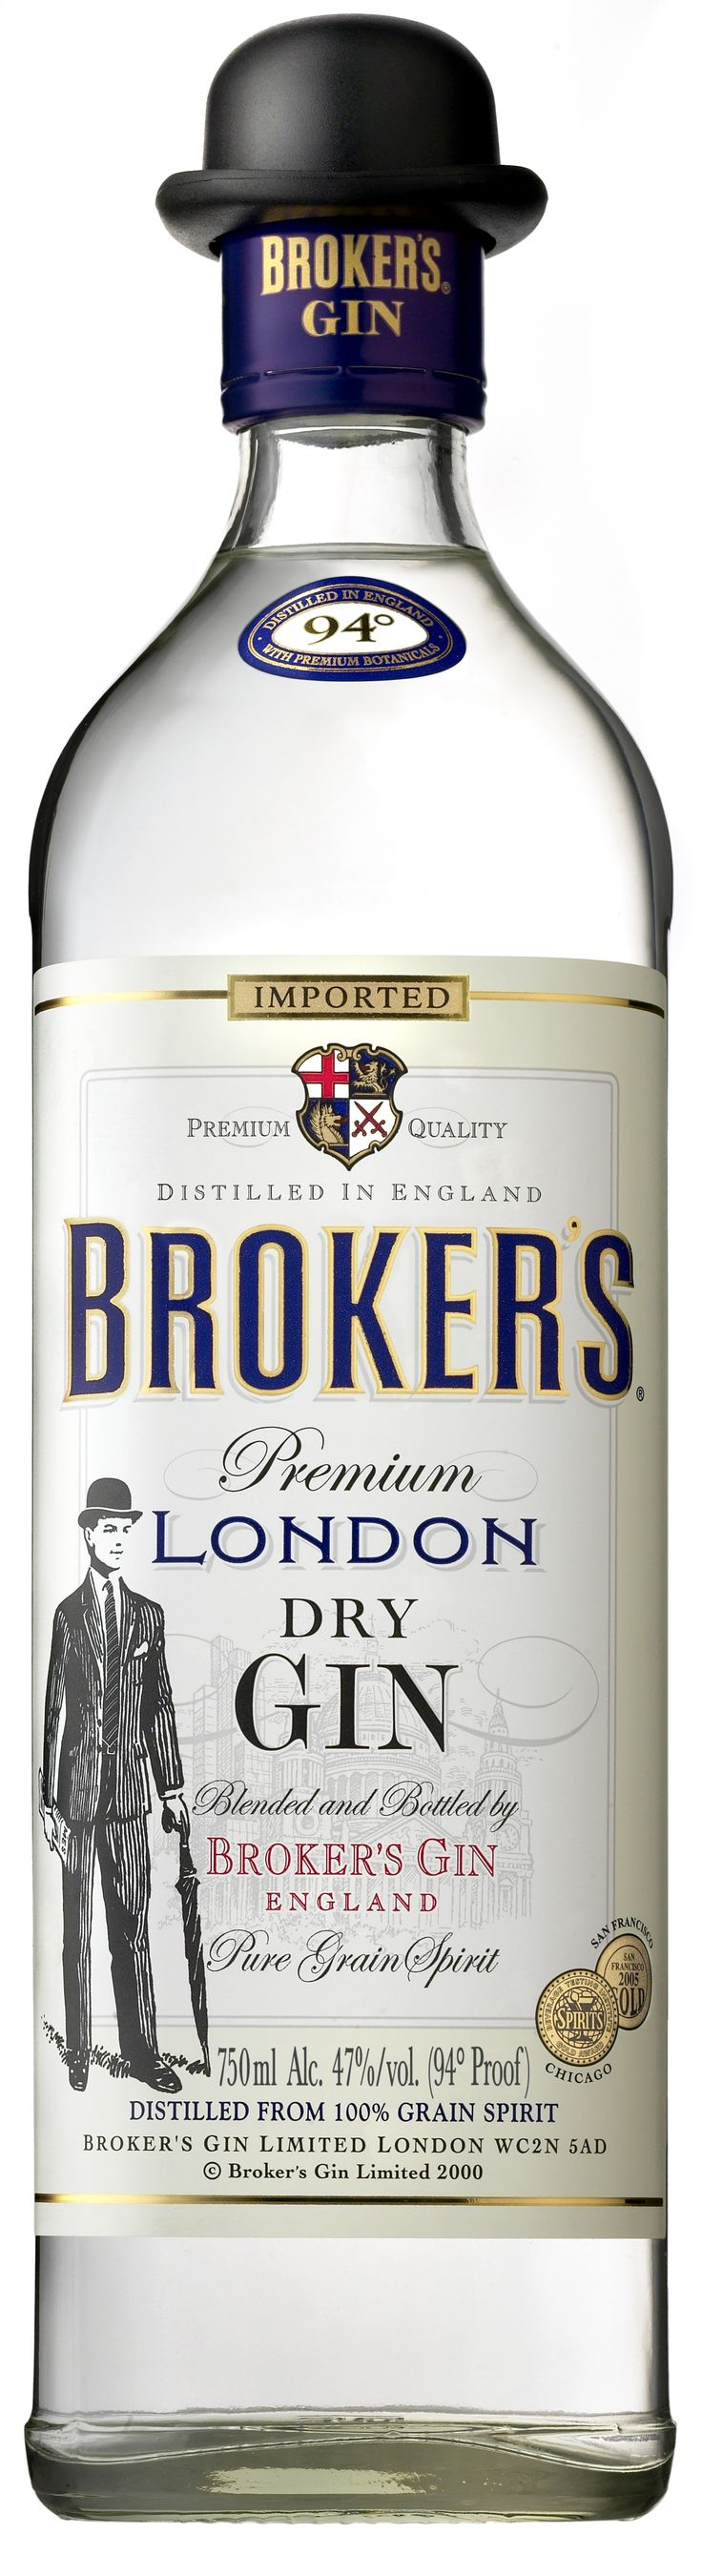 The kind of gin we'll use! Not sure if the hat is timely so it might not be included, but the bottle is correct.